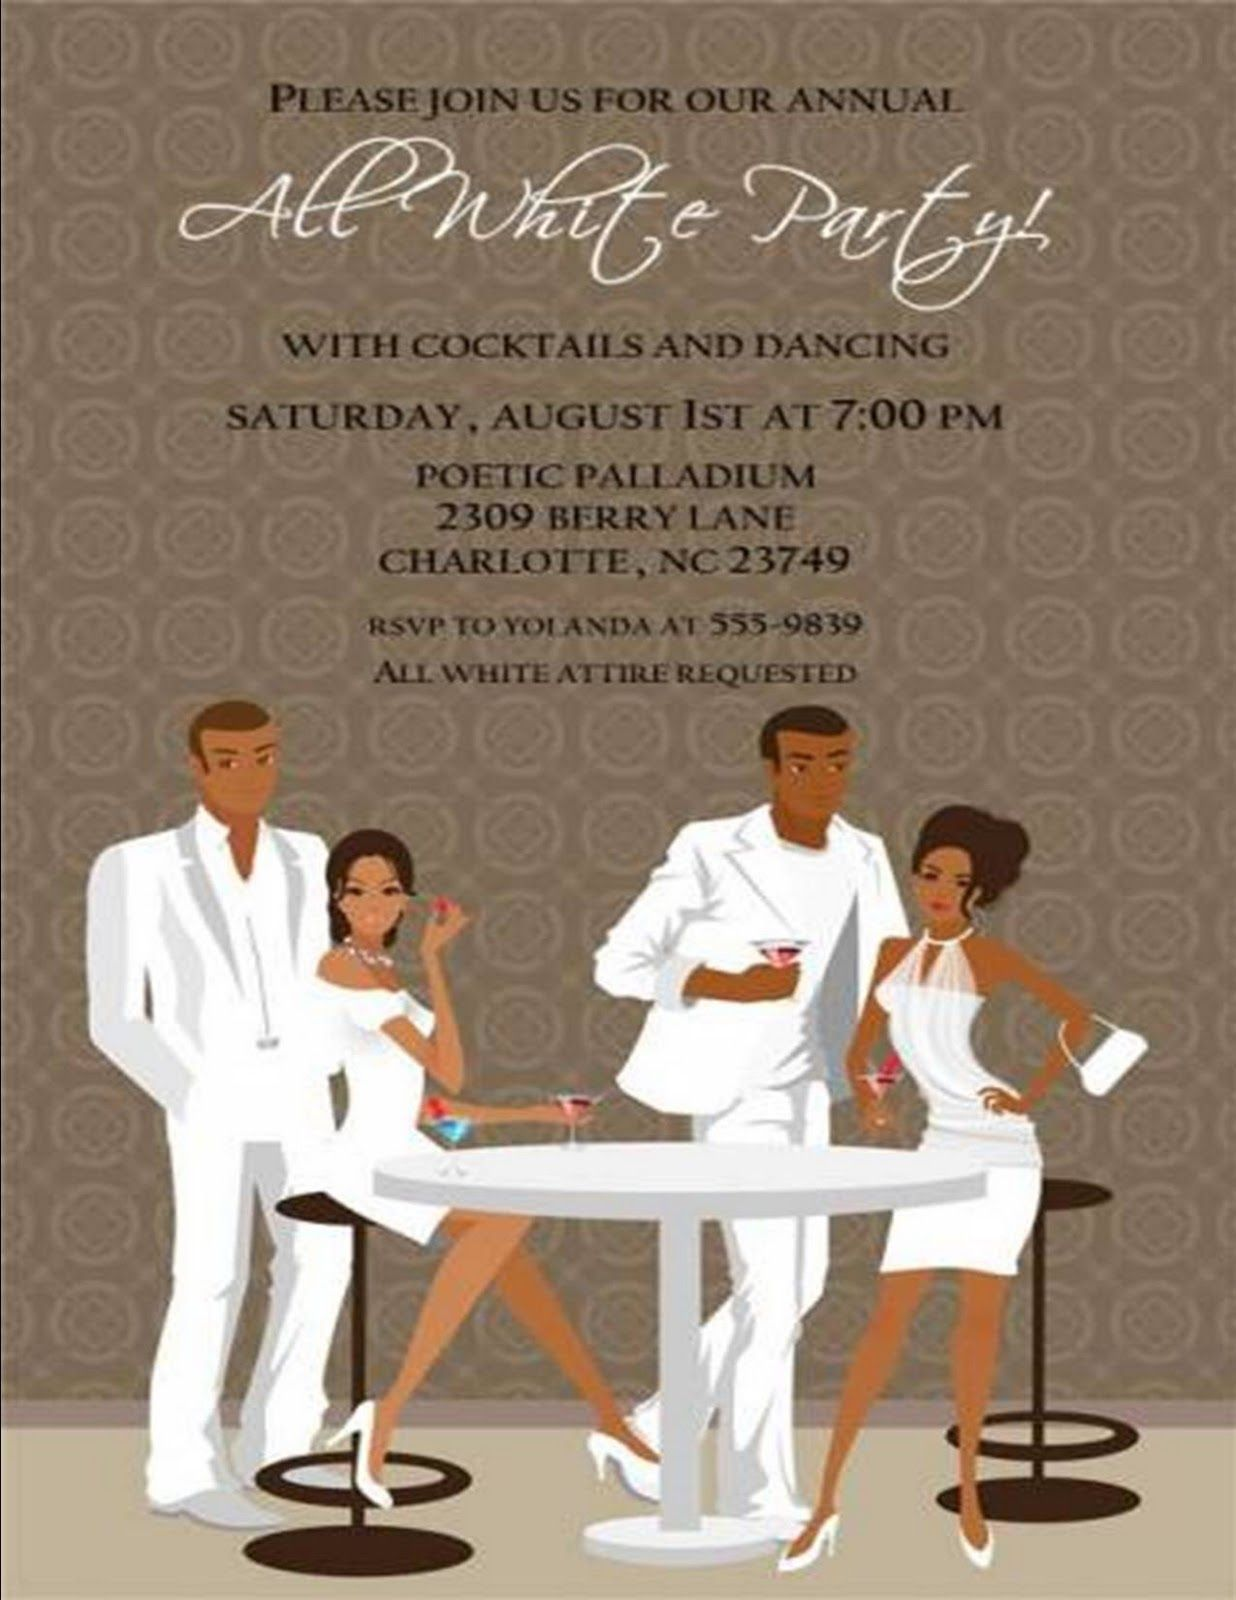 All white affair invitations yeniscale all white affair invitations stopboris